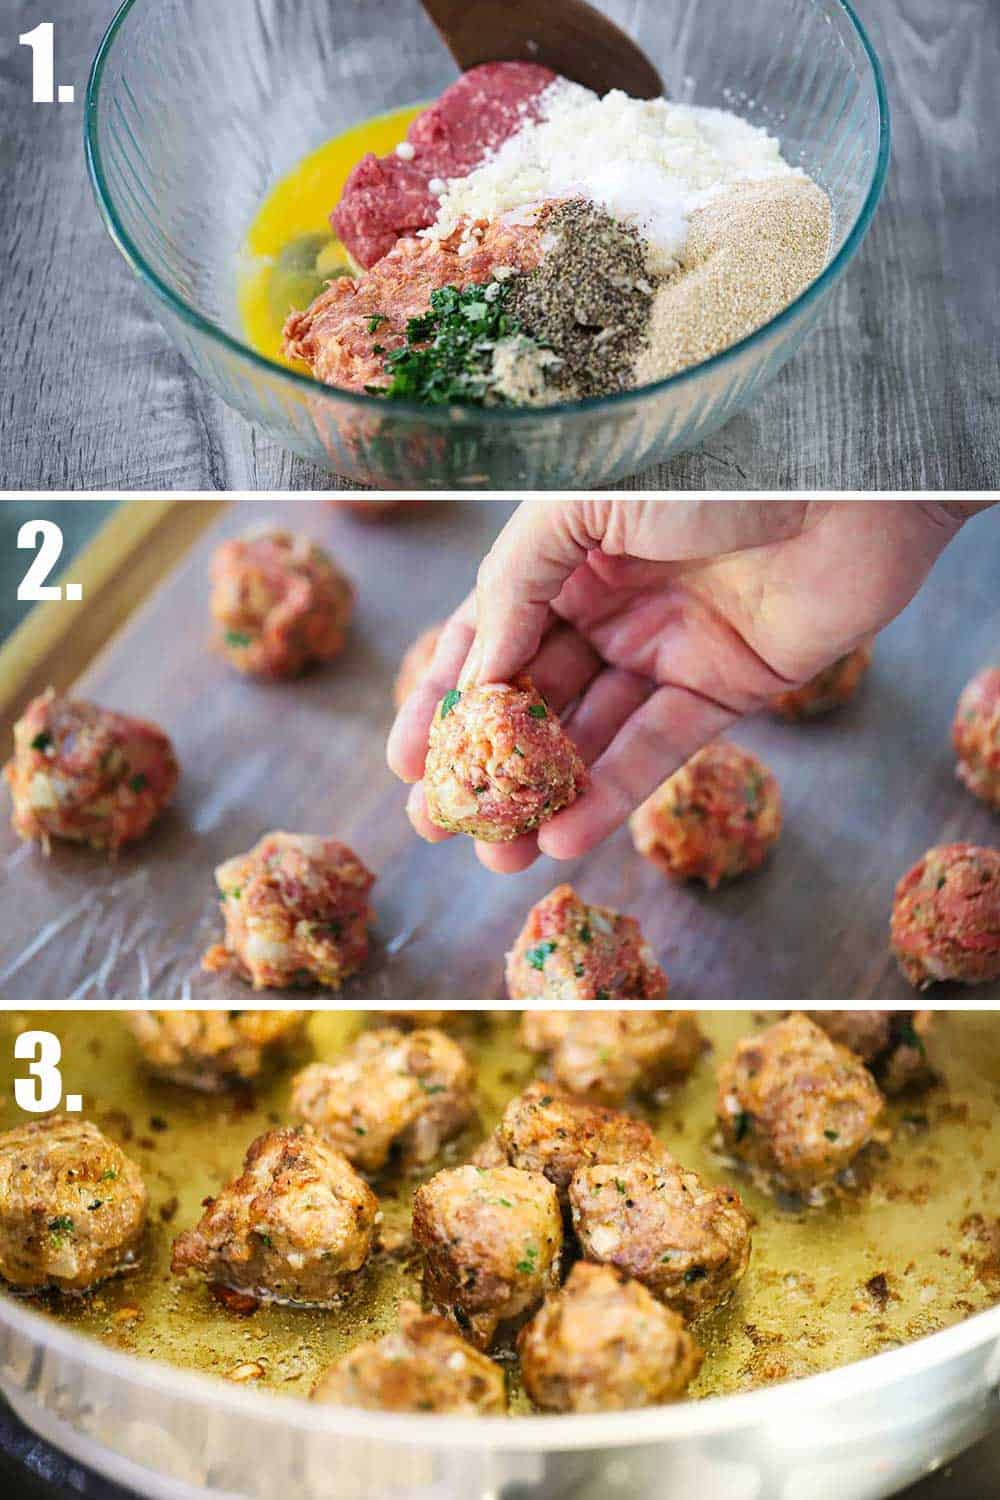 3 images with 1st a bowl filled with ground meat, eggs, and cheese, and the next a hand holding a formed meatball, and last meatballs cooking in a hot skillet.